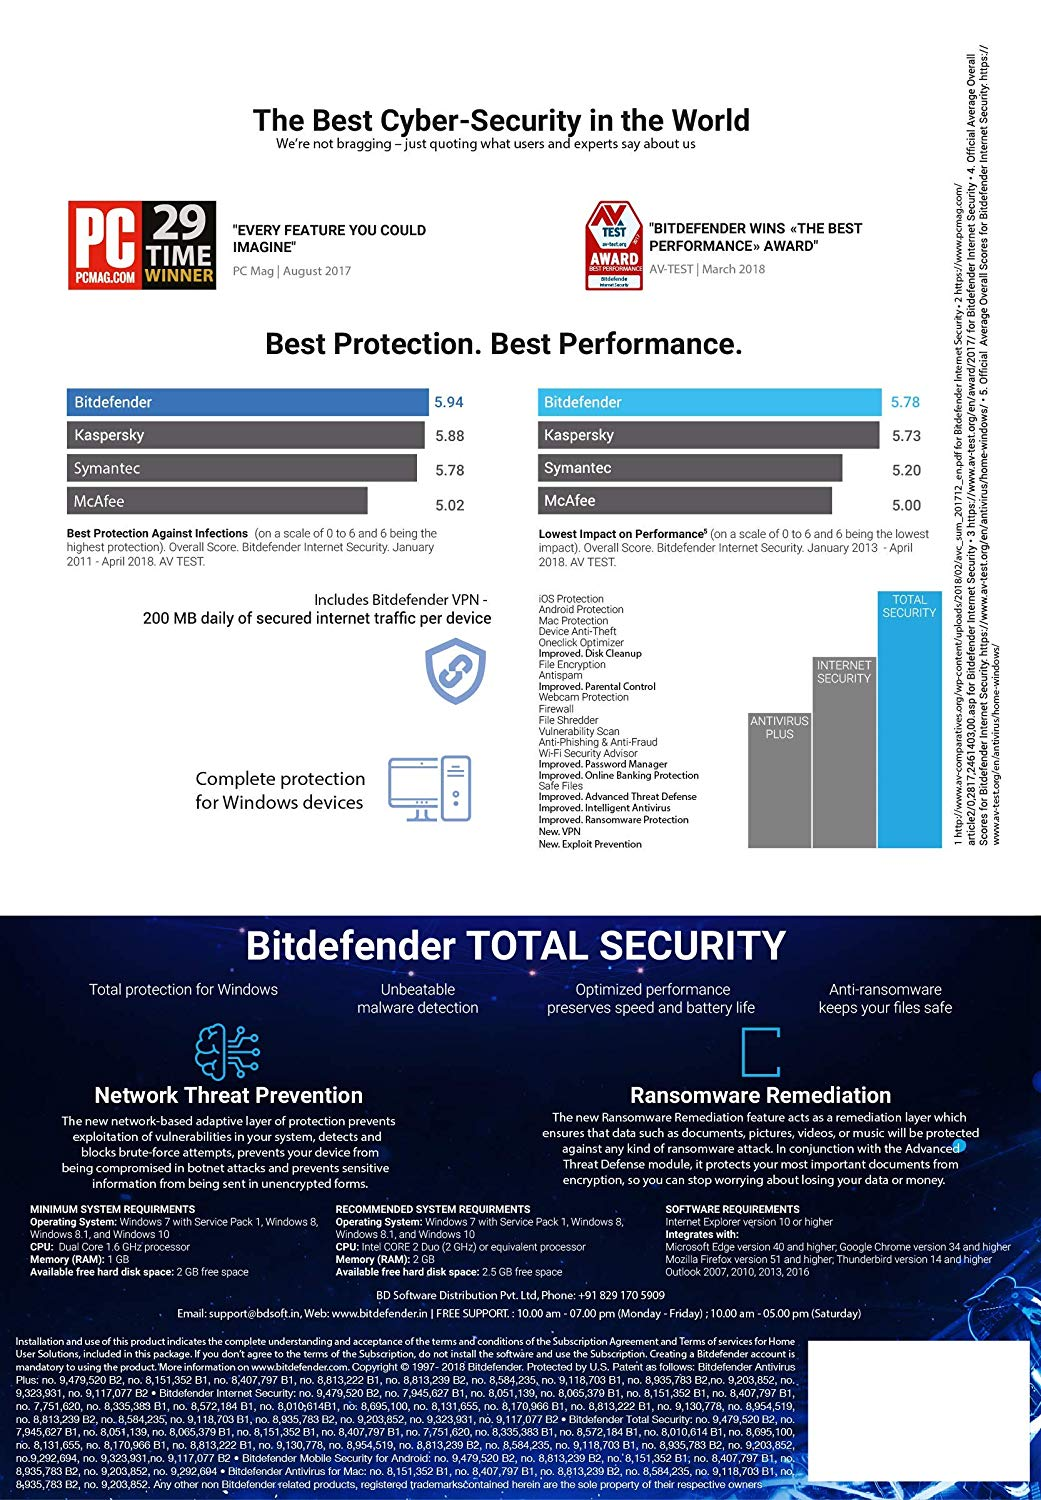 BitDefender Total Security Latest Version with Ransomware Protection